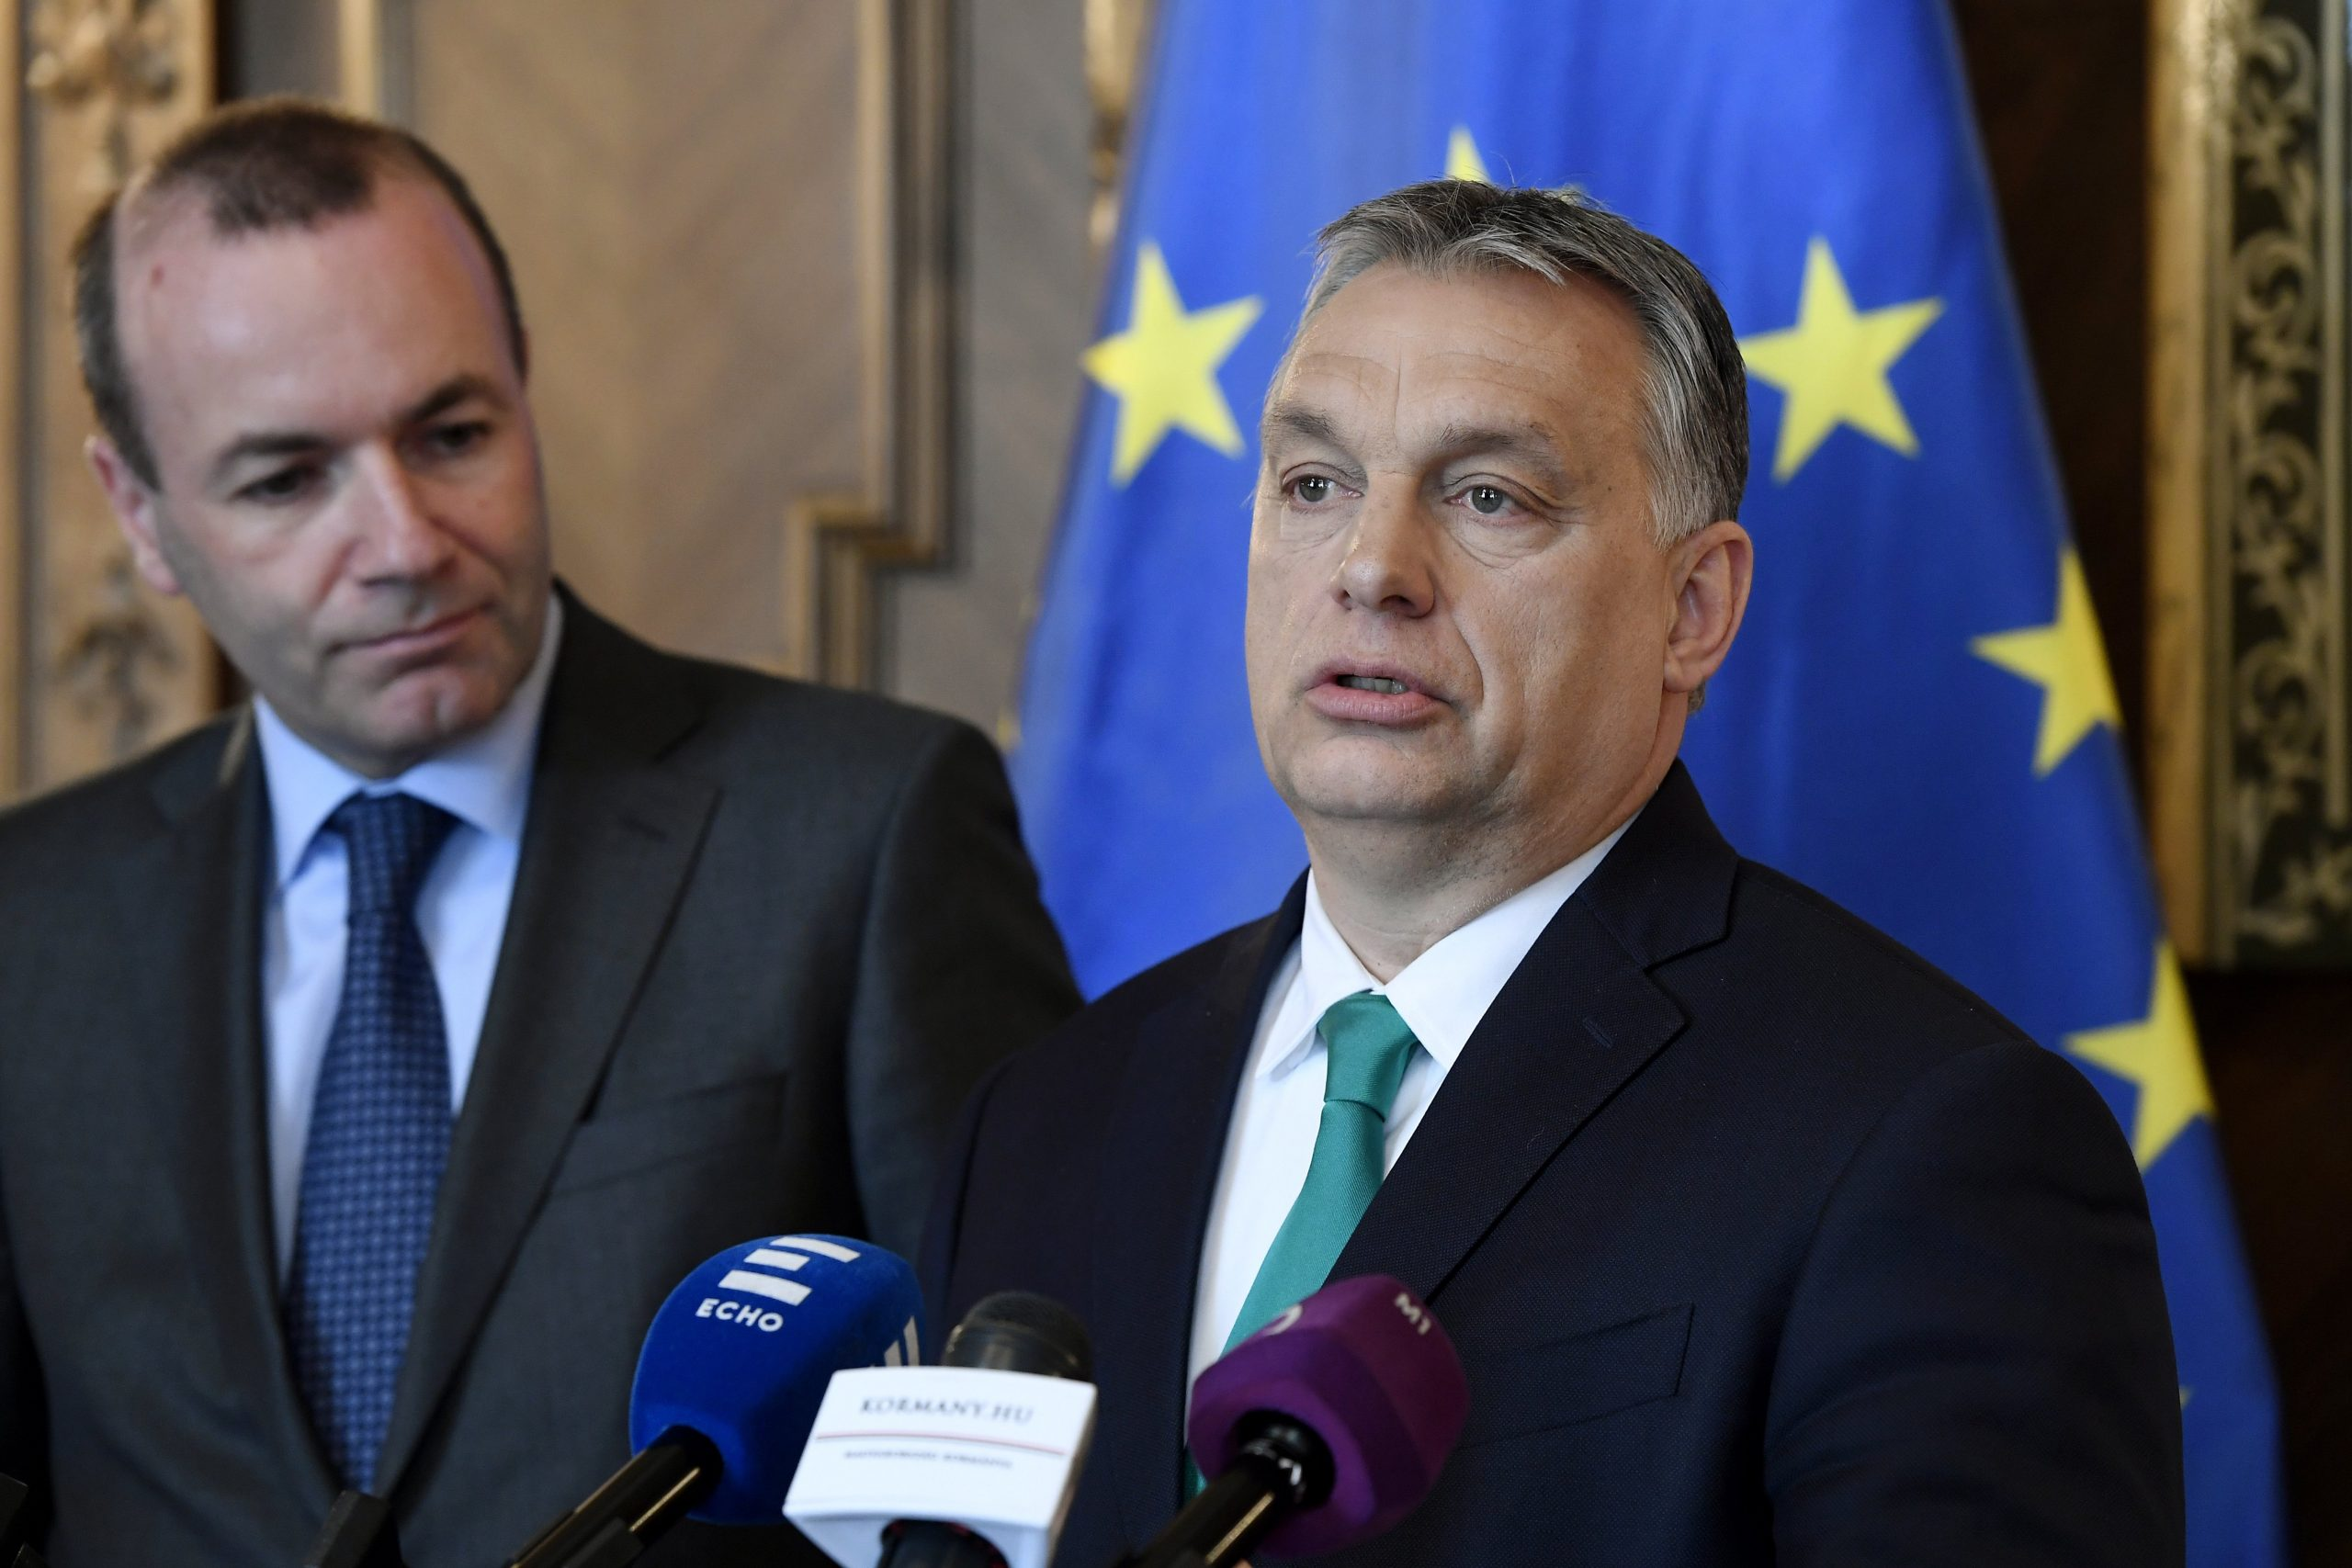 Fidesz Drifting Away from European Values, or EPP from Conservative Values? - Reactions on Fidesz MEPs Leaving EPP Group